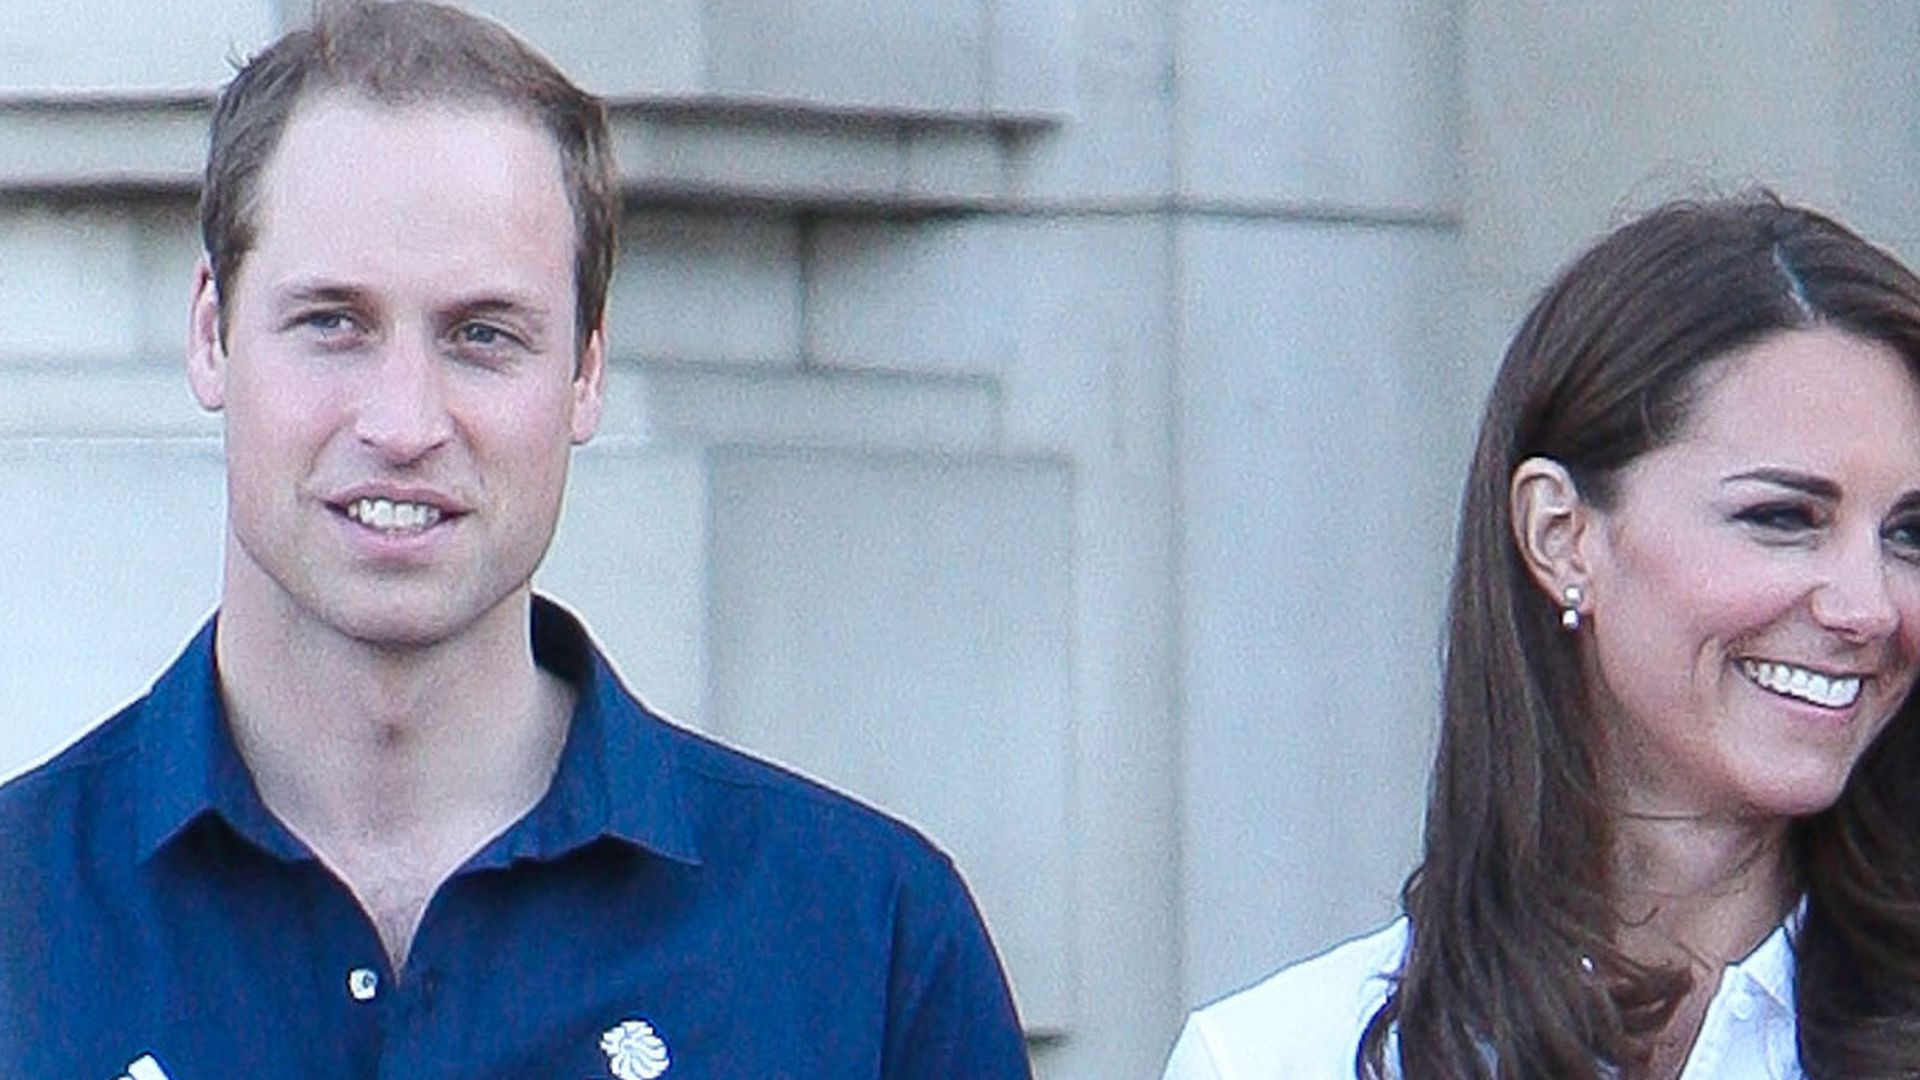 Prince William and Kate Middleton Give Life Advice to Kids While ...